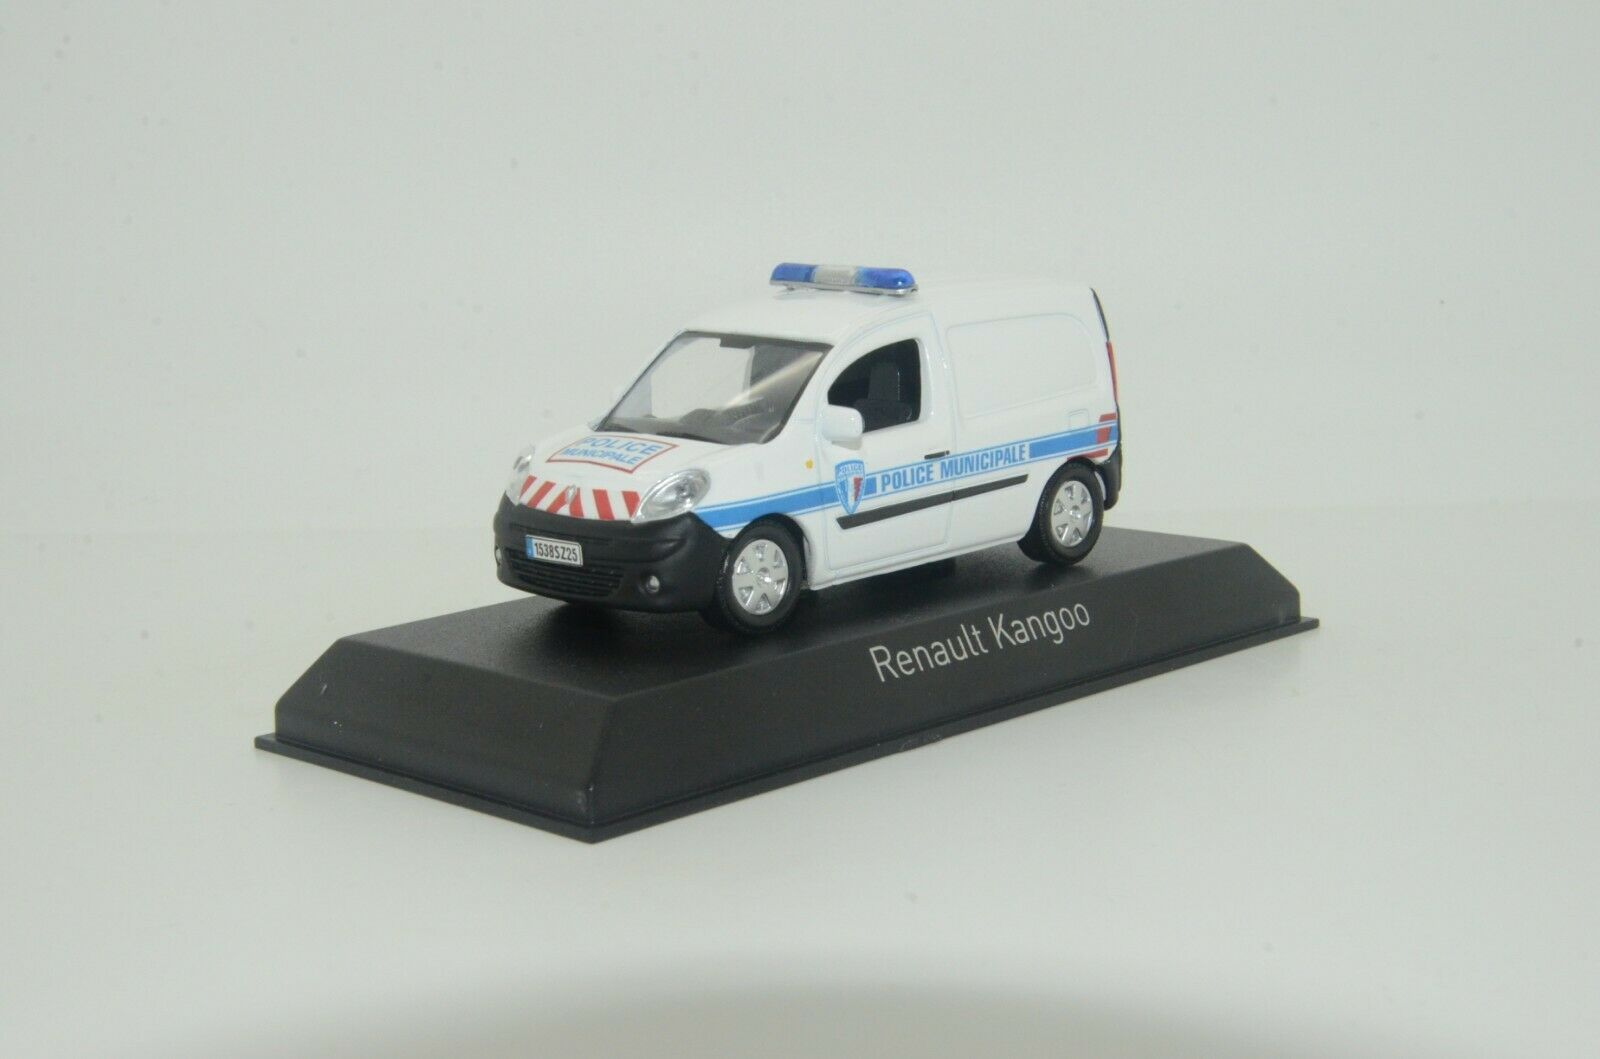 RARE     Renault Kangoo France Police Municipale Custom Made 1 43